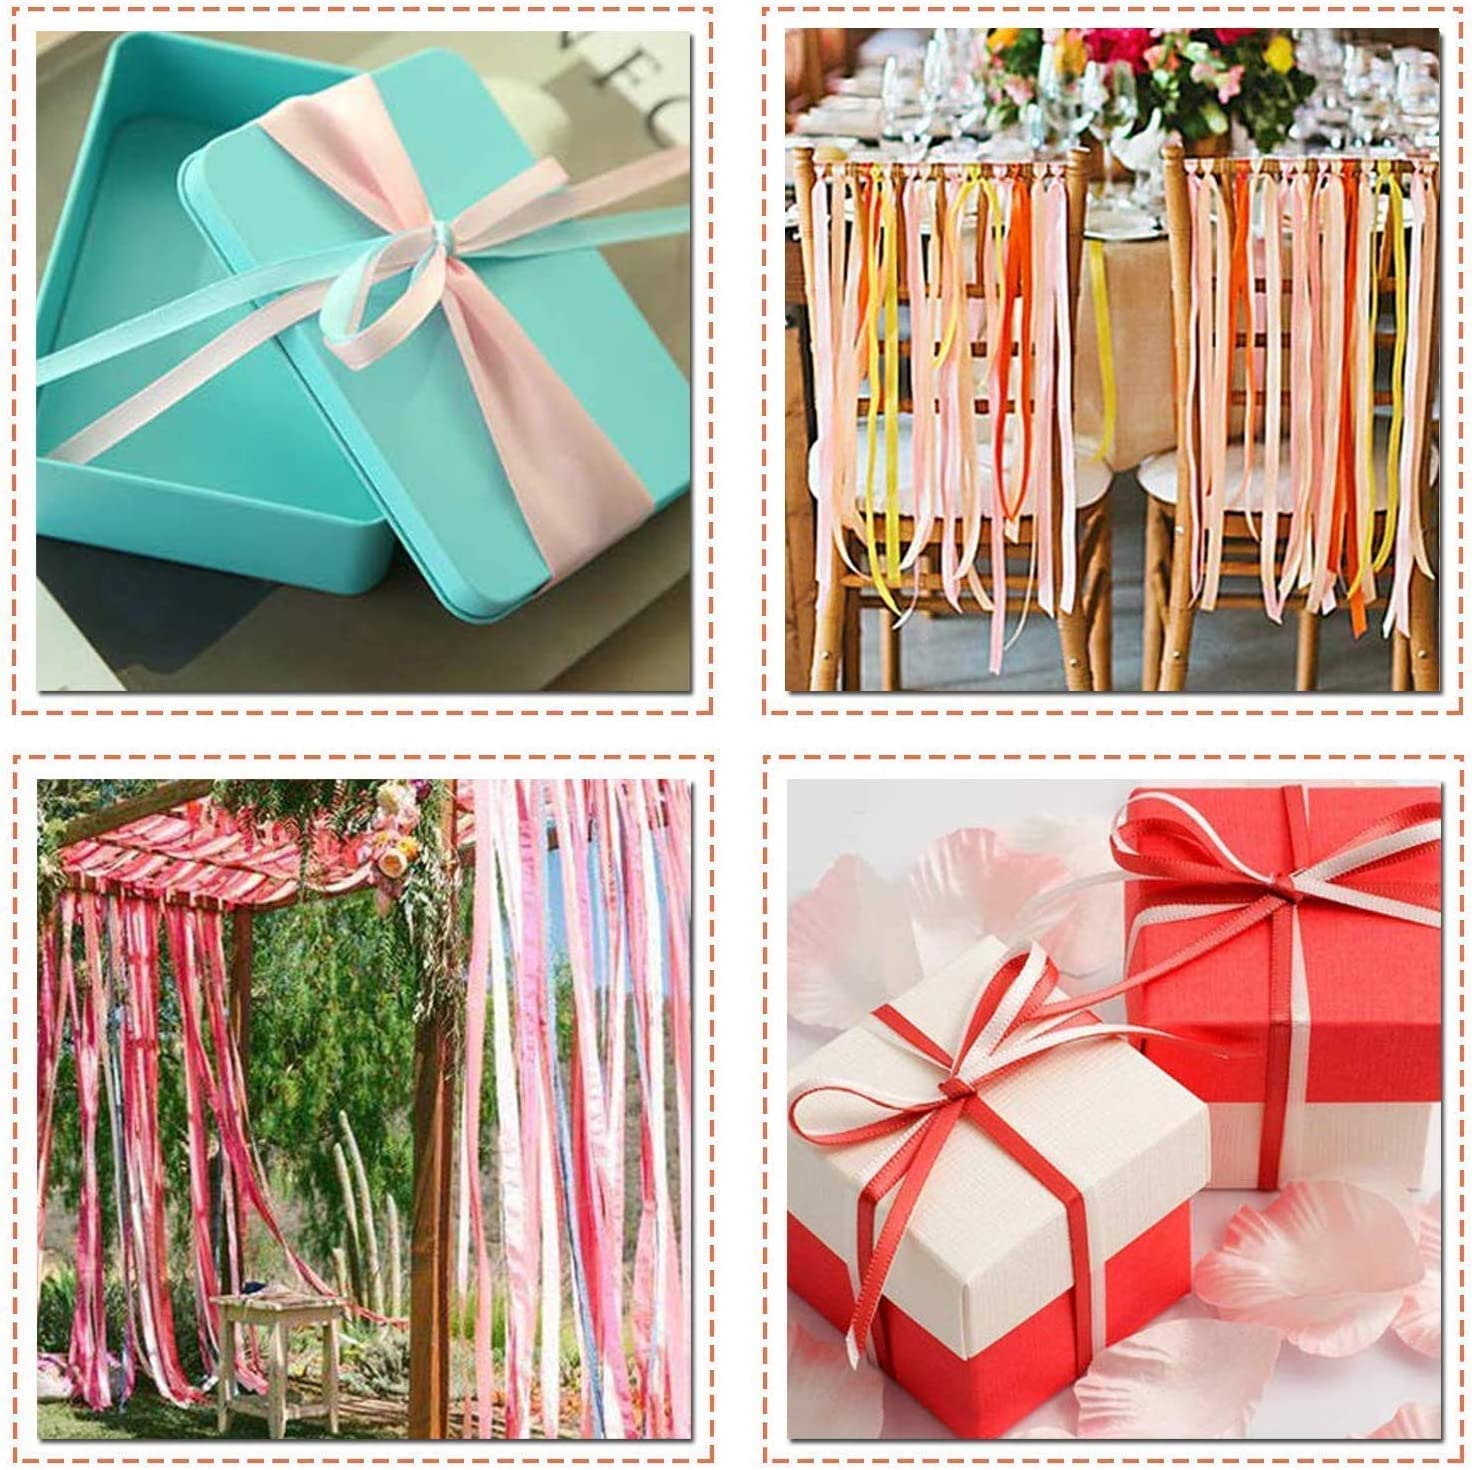 WedDecor Baby Pink Double Sided Satin Ribbon Roll Gift Wrapping Birthday Bows Arts and Crafts 10mm x 25m Decoration for Wedding Clothing Reel of Polyester Fabric for Sewing Dresses